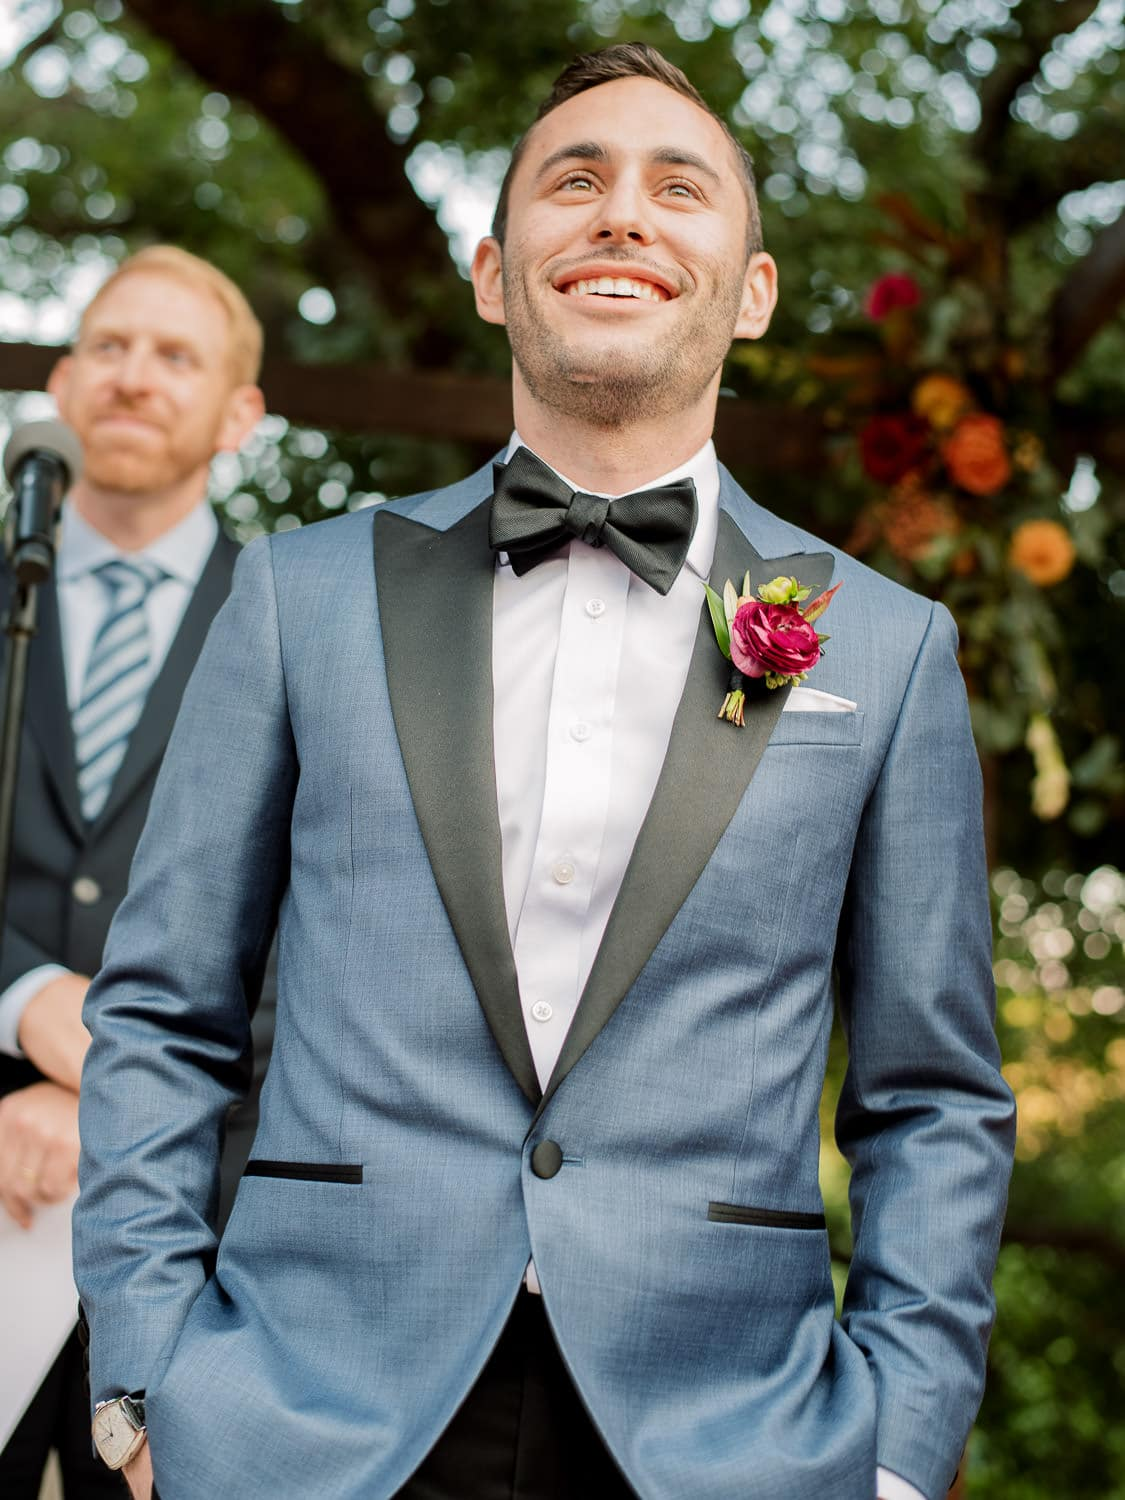 Groom-Tuxedo-Style-Inspiration-Greg-Ross